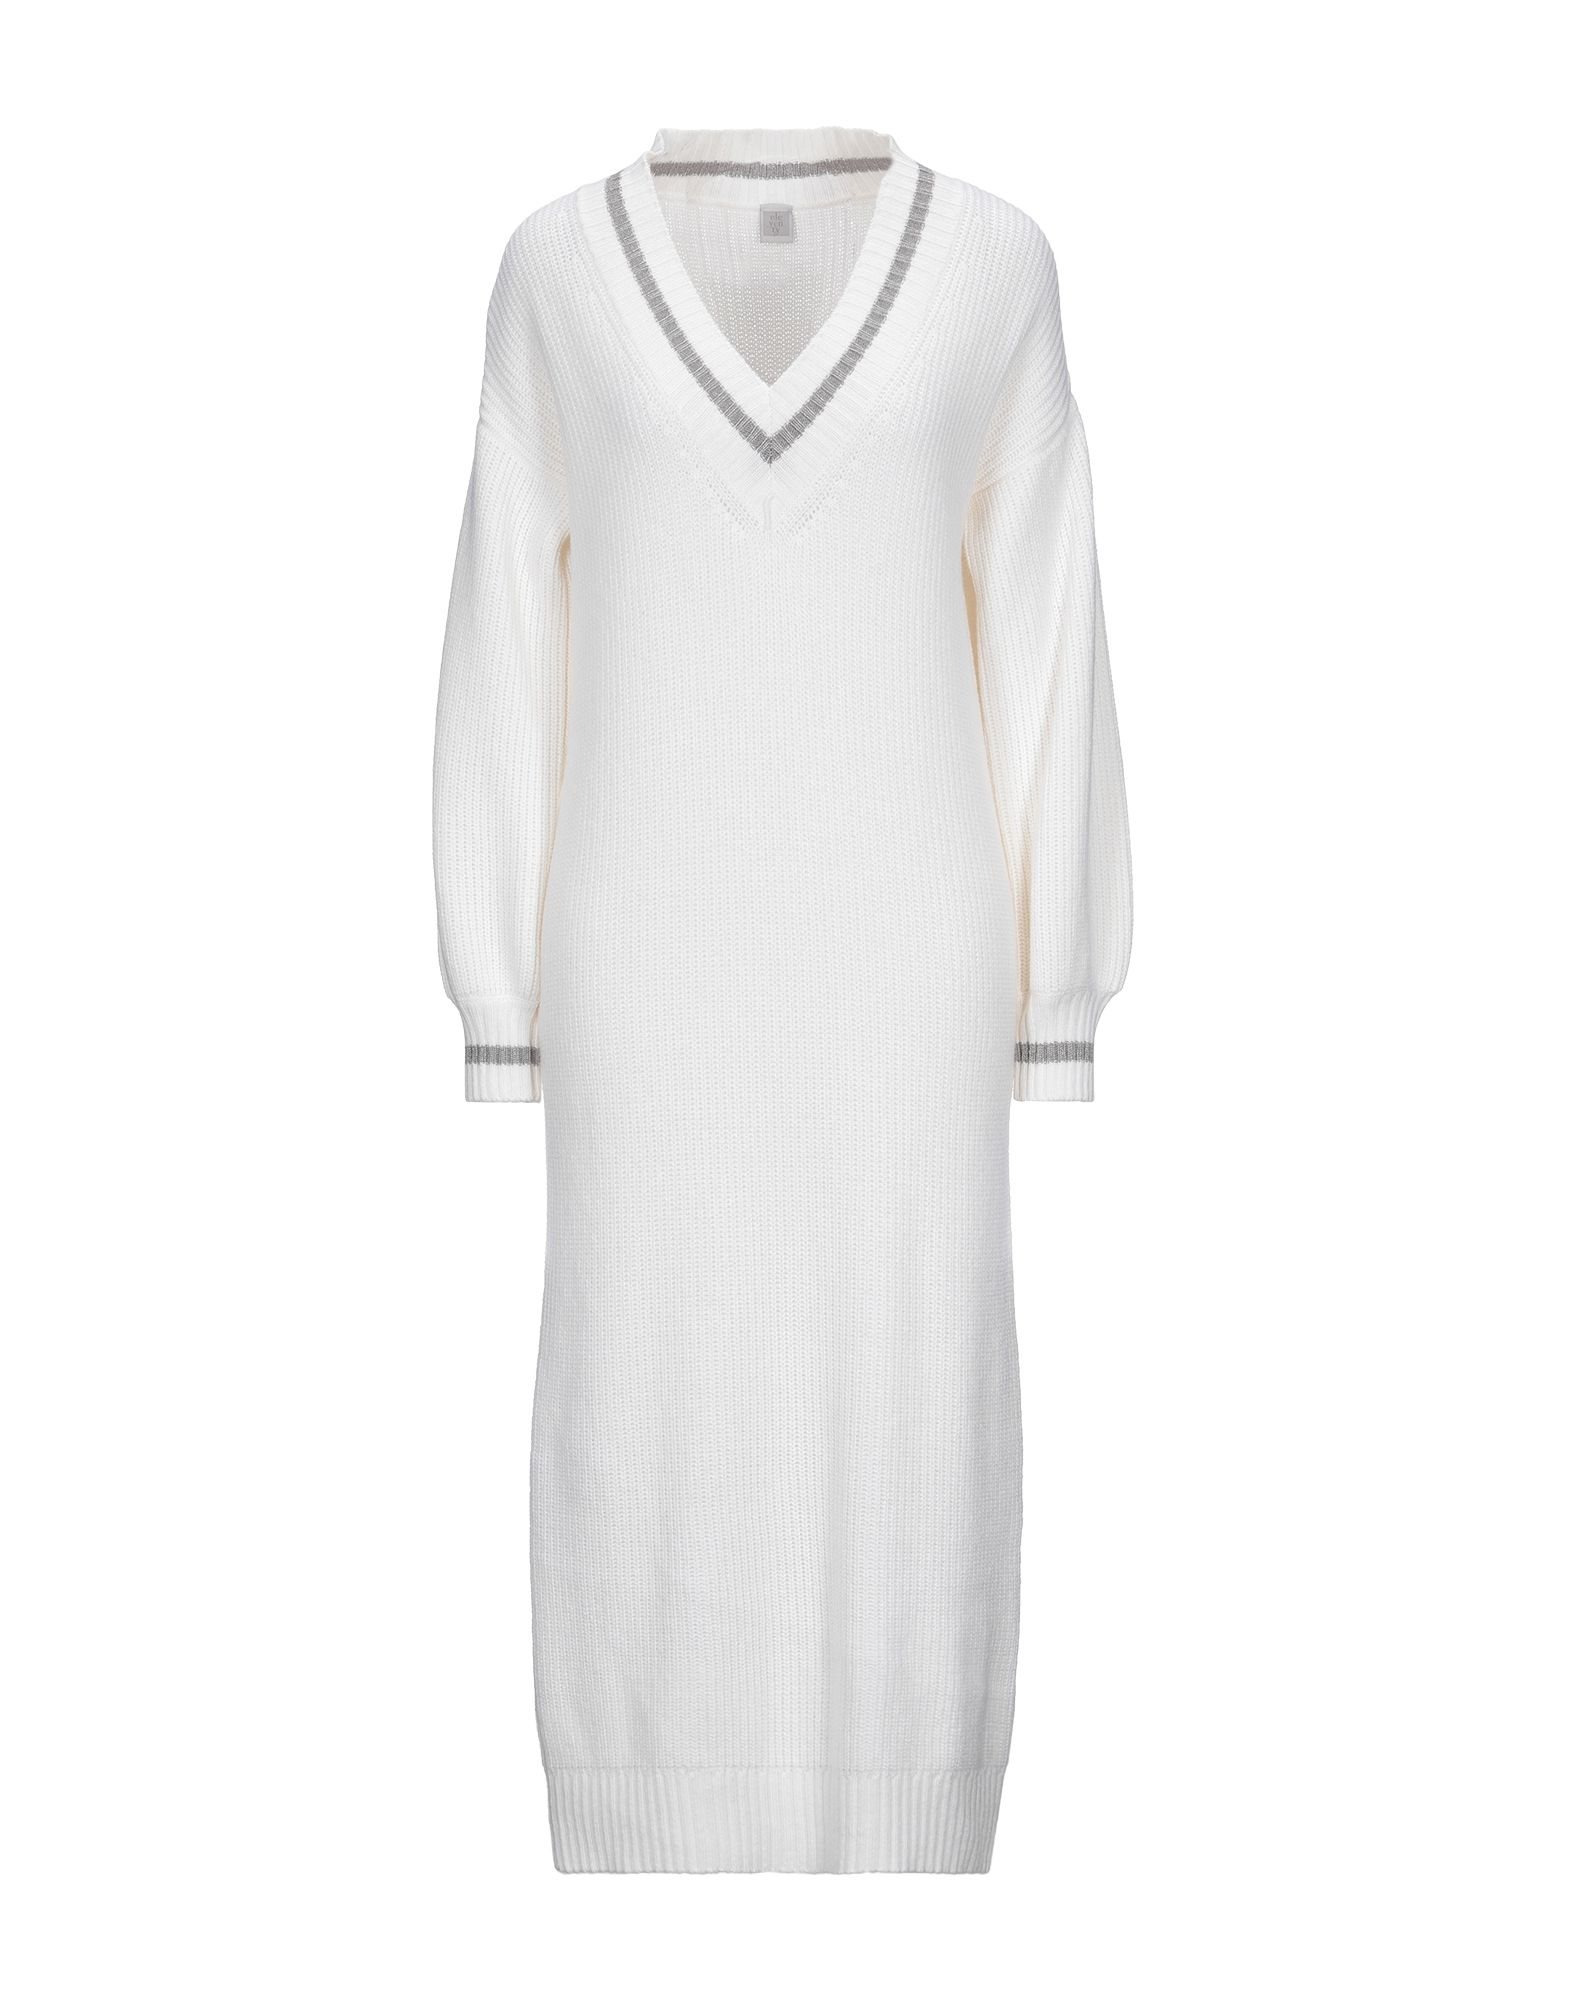 ELEVENTY Knee-length dresses. knitted, cable stitch, no appliqués, solid color, lightweight knit, v-neck, long sleeves, no pockets, unlined. 45% Wool, 30% Viscose, 25% Cashmere